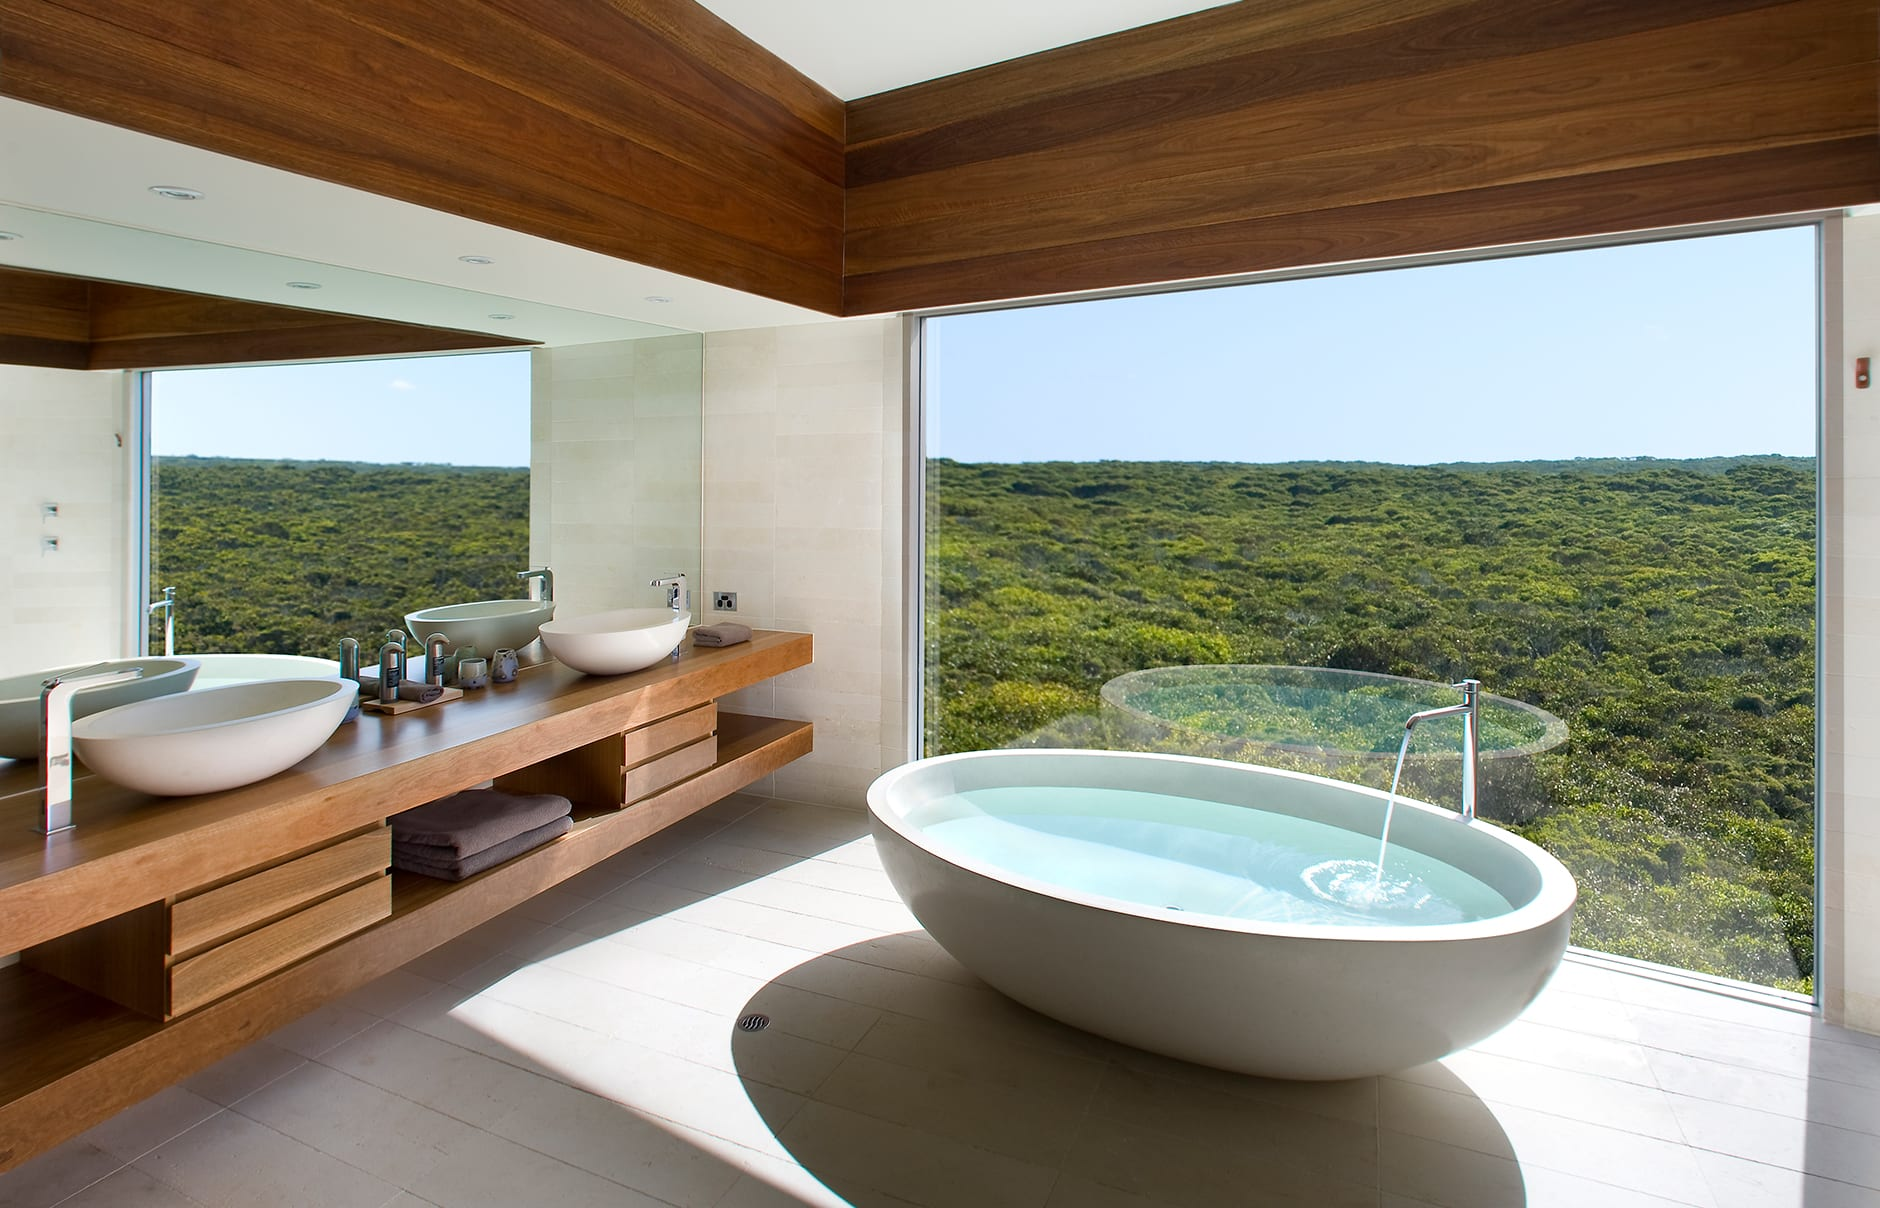 Osprey Bathroom. Southern Ocean Lodge, Kangaroo Island, Australia. © Luxury Lodges of Australia